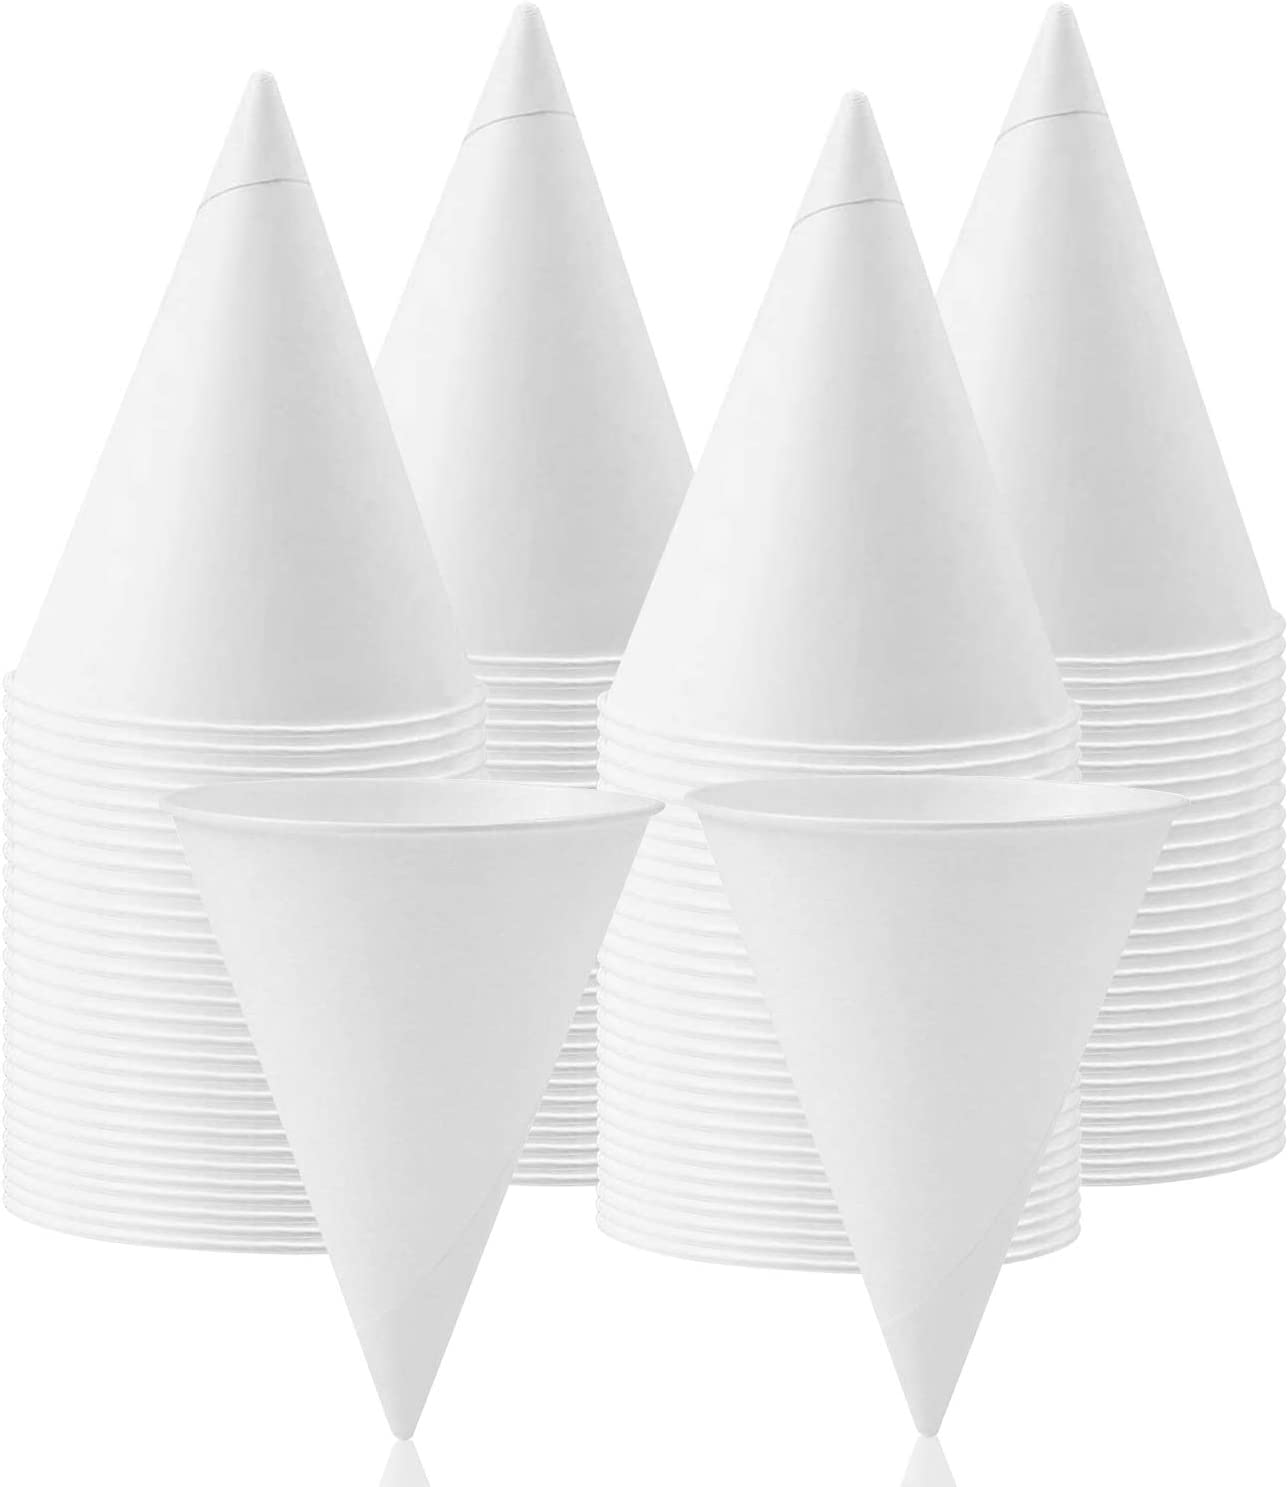 Snow Cone Cups,200 Pieces Wax Coated Leakproof Cone Paper Cups Dispenser Cups for Slush, Shaved Ice, Water -6 OZ